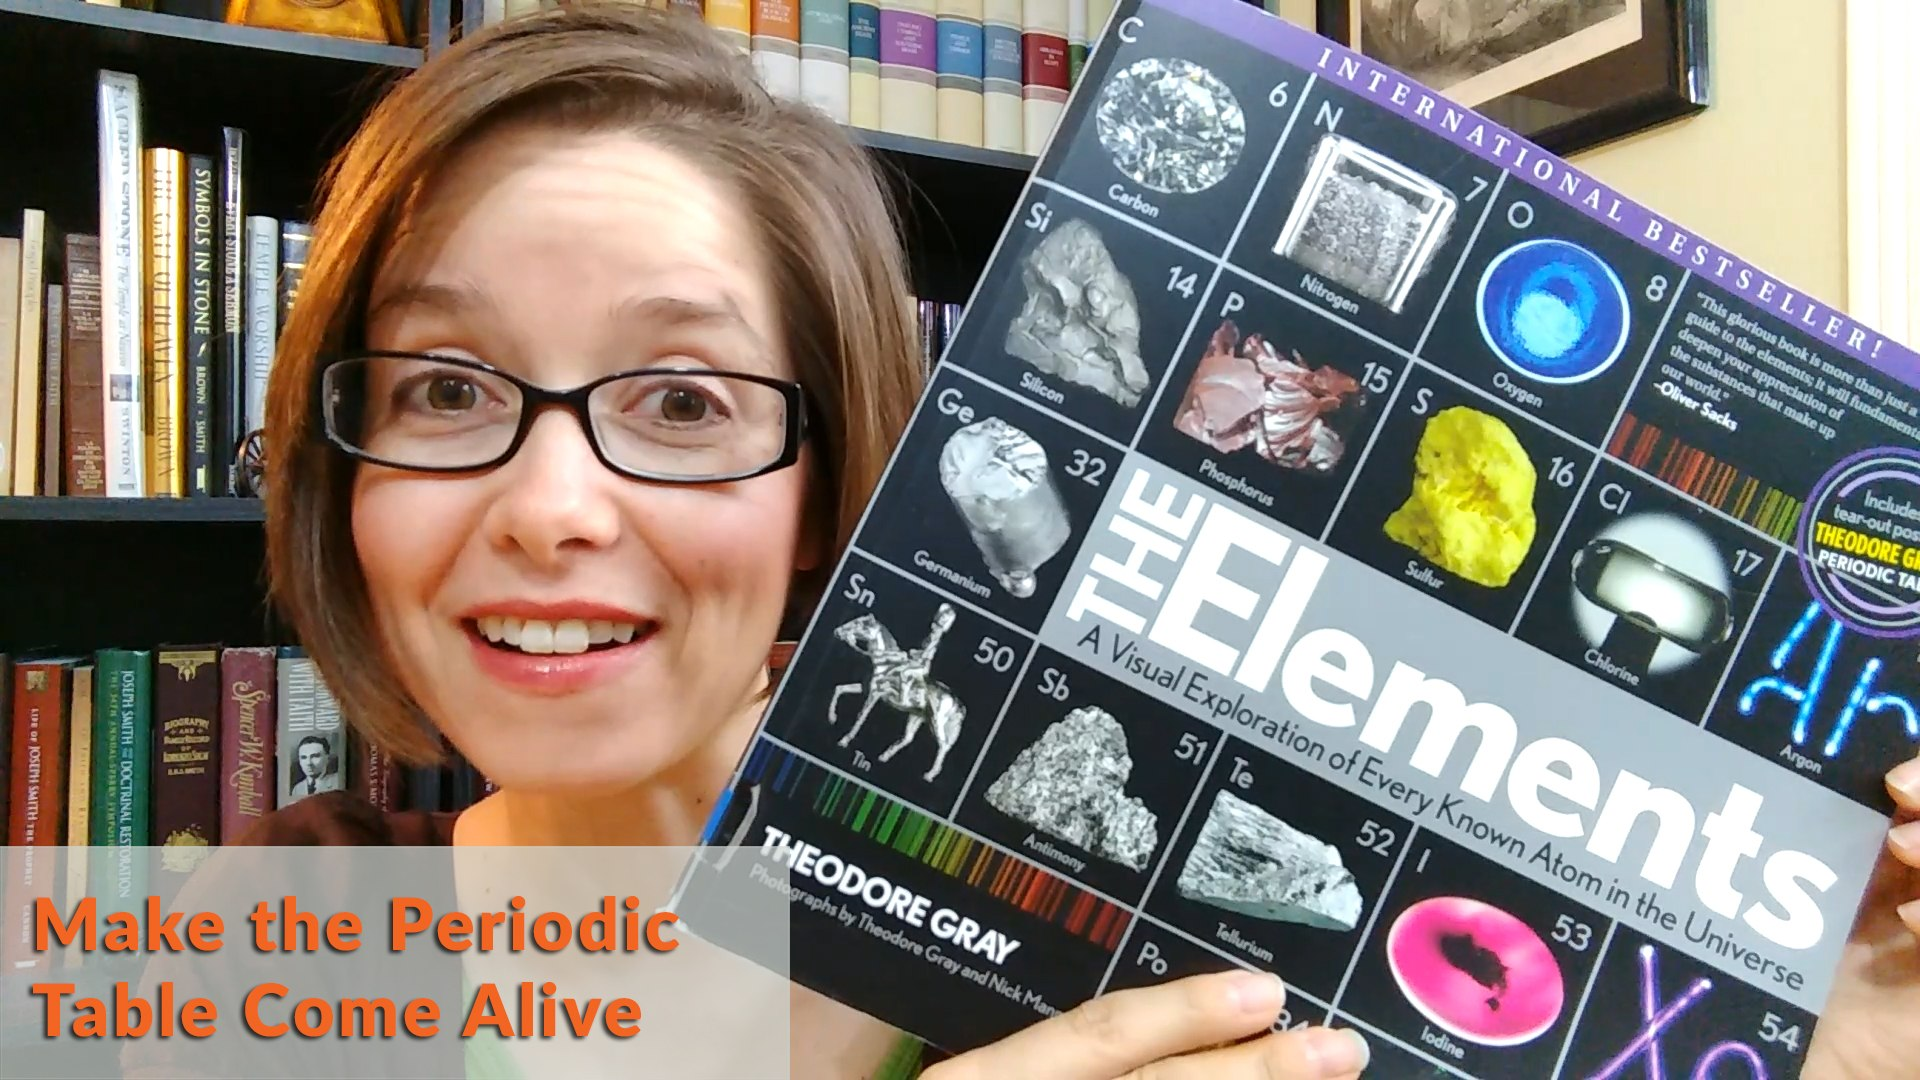 The Elements Book Review - Make the Periodic Table Come Alive